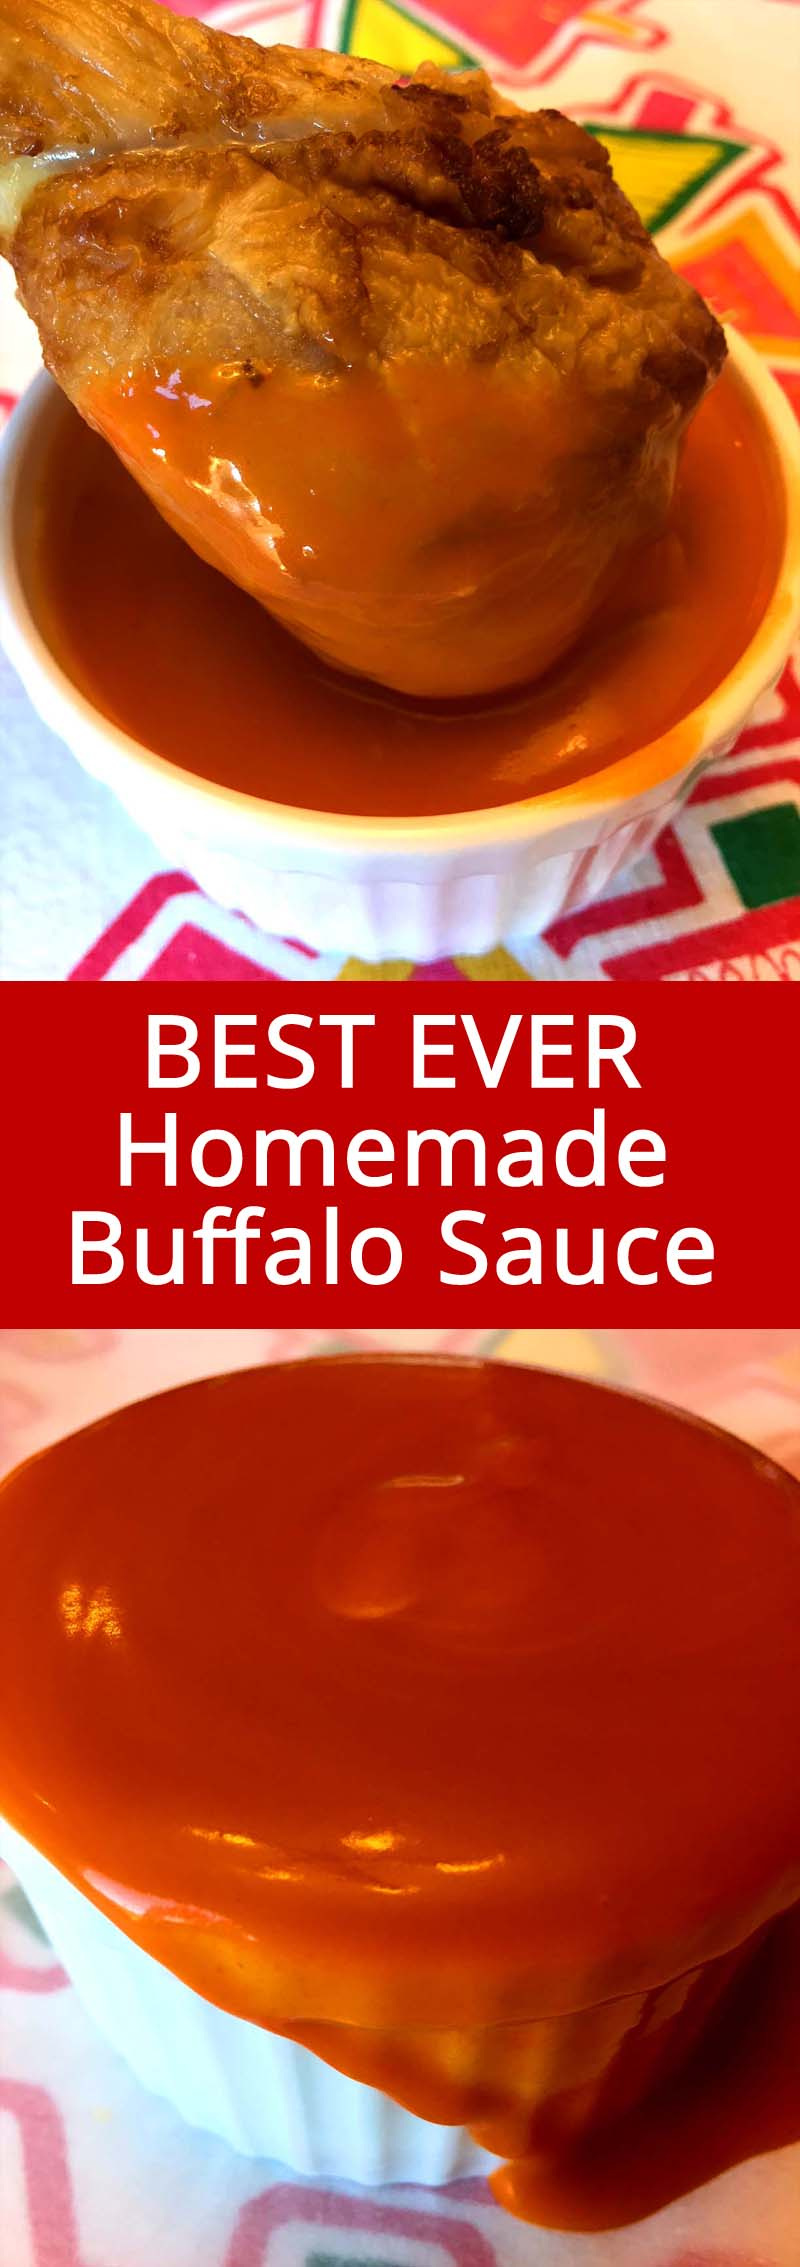 This homemade Buffalo sauce recipe makes the best Buffalo wings sauce ever! So spicy and full of flavor, I'll never have the bottled Buffalo sauce ever again!